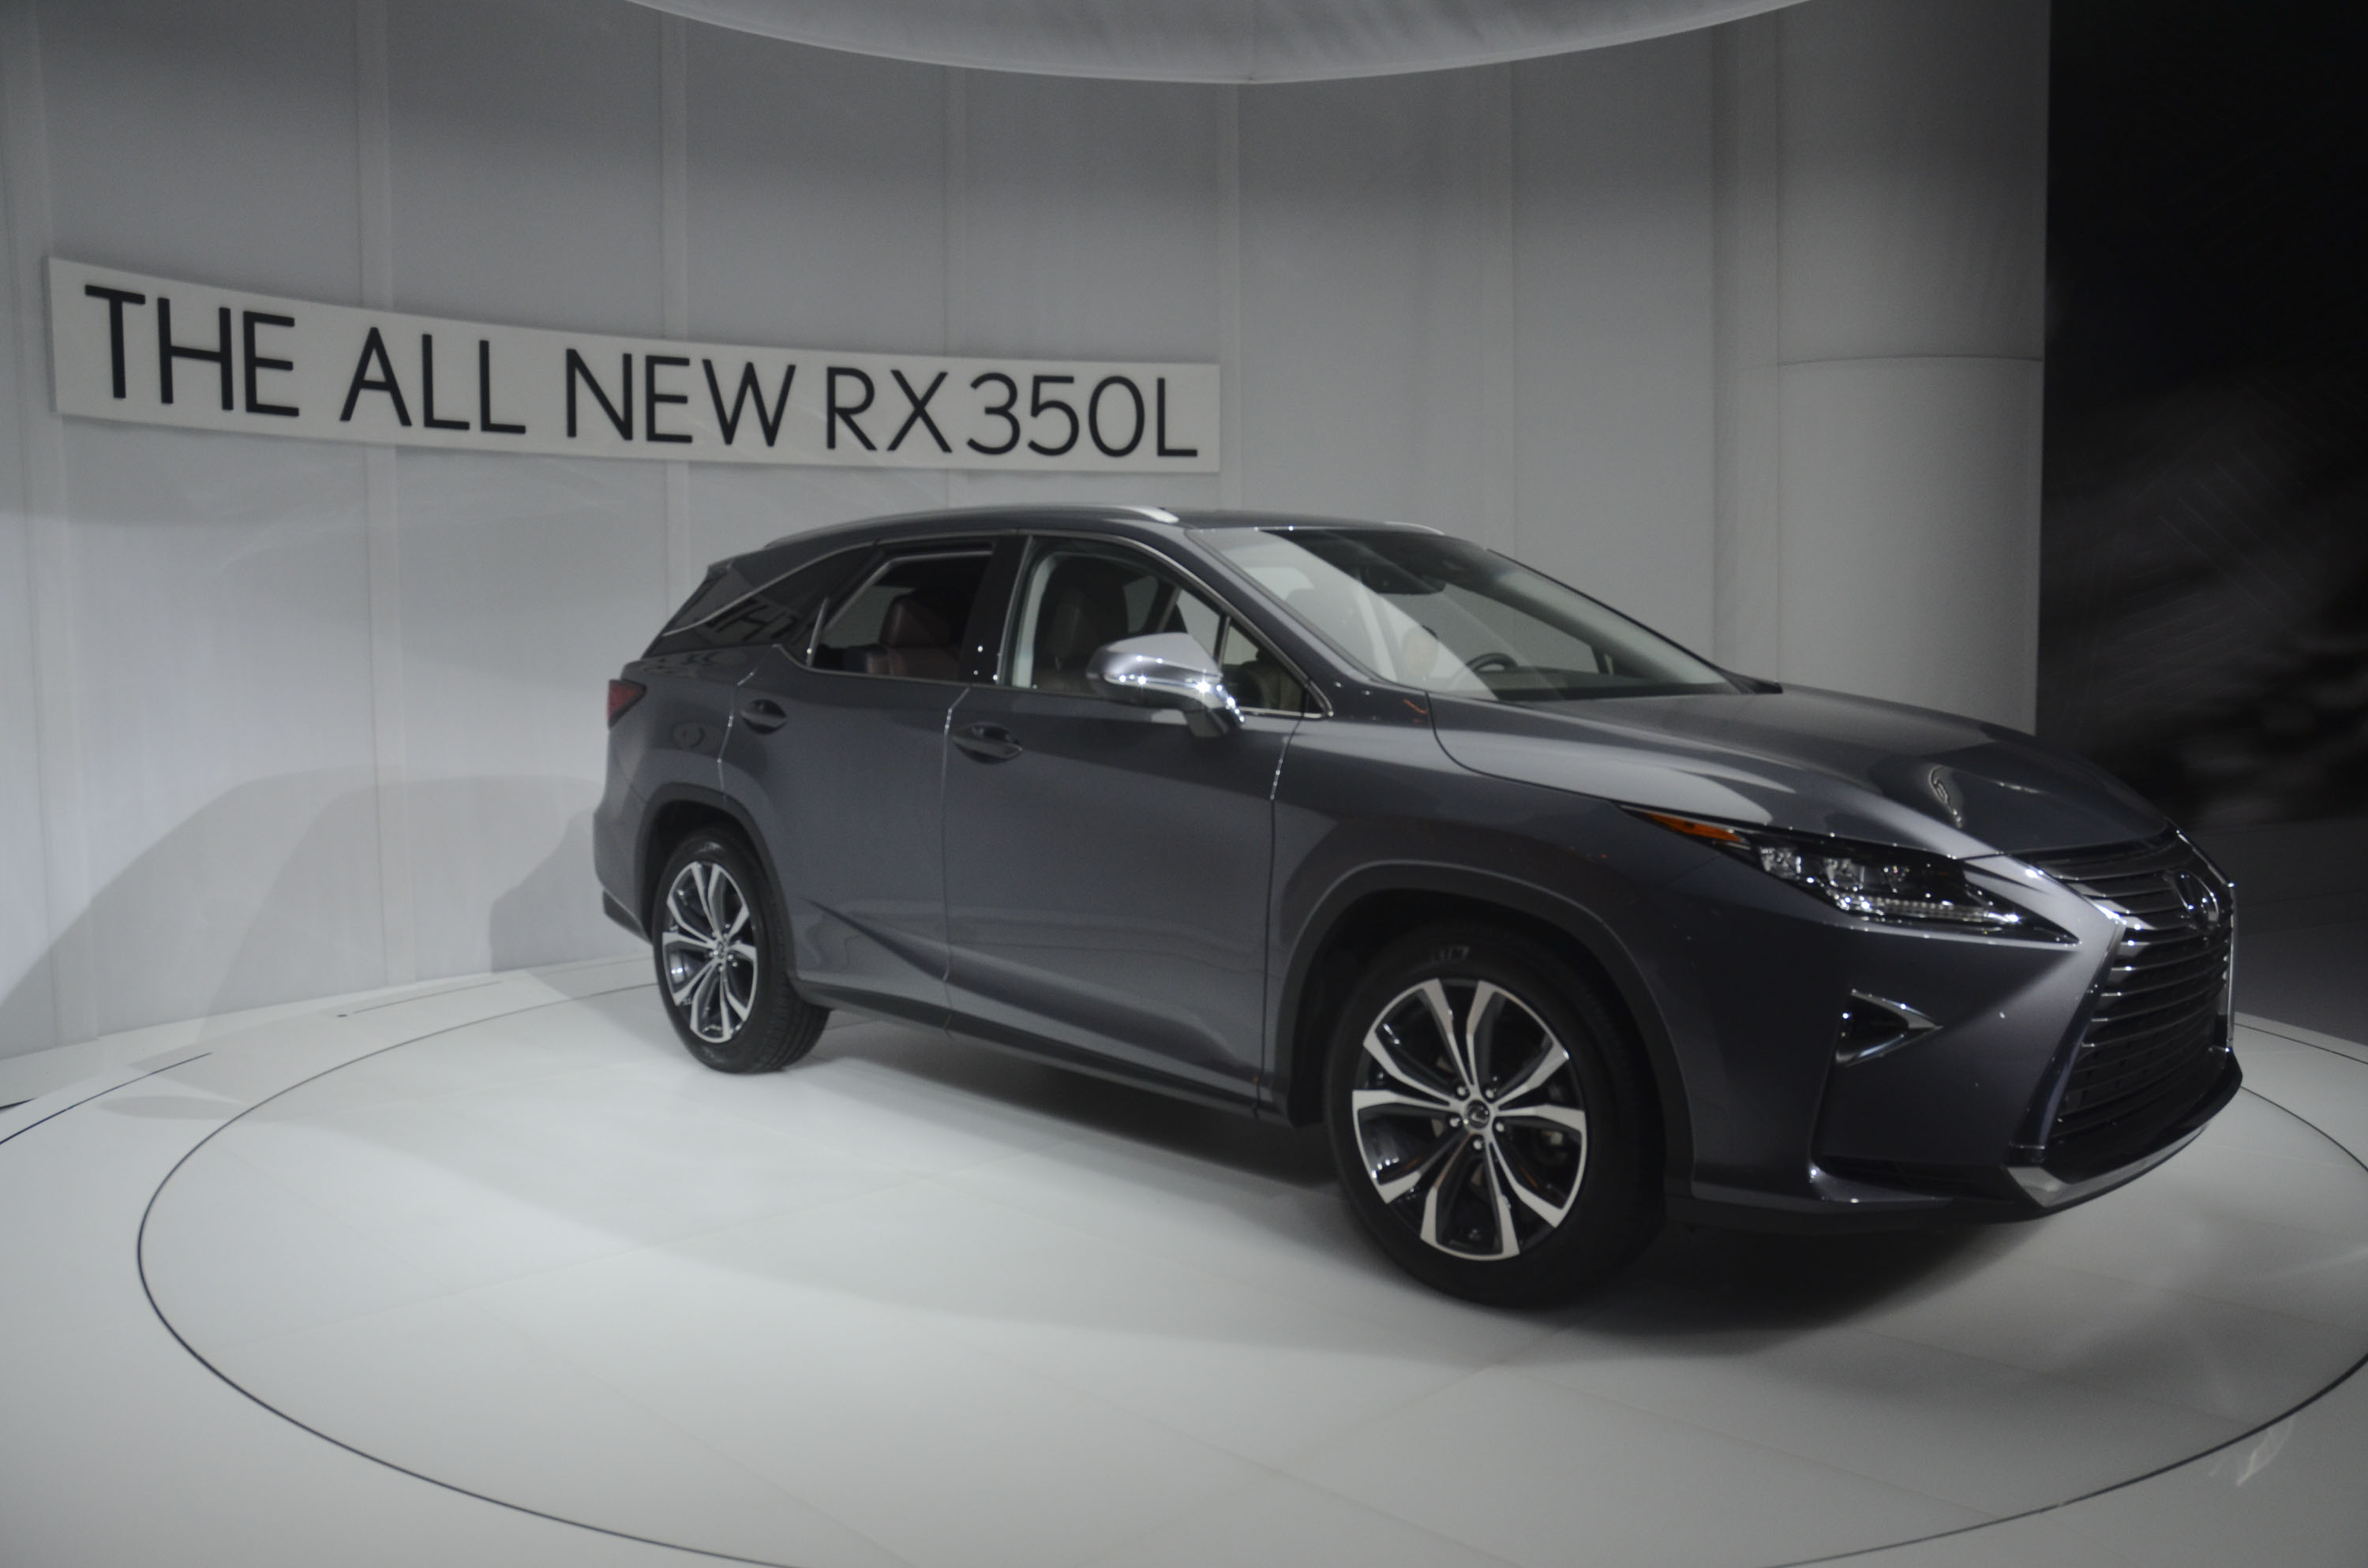 lexus toyota used scotia suv in nova inventory rx yarmouth warranty touring extended vehicle en tusket